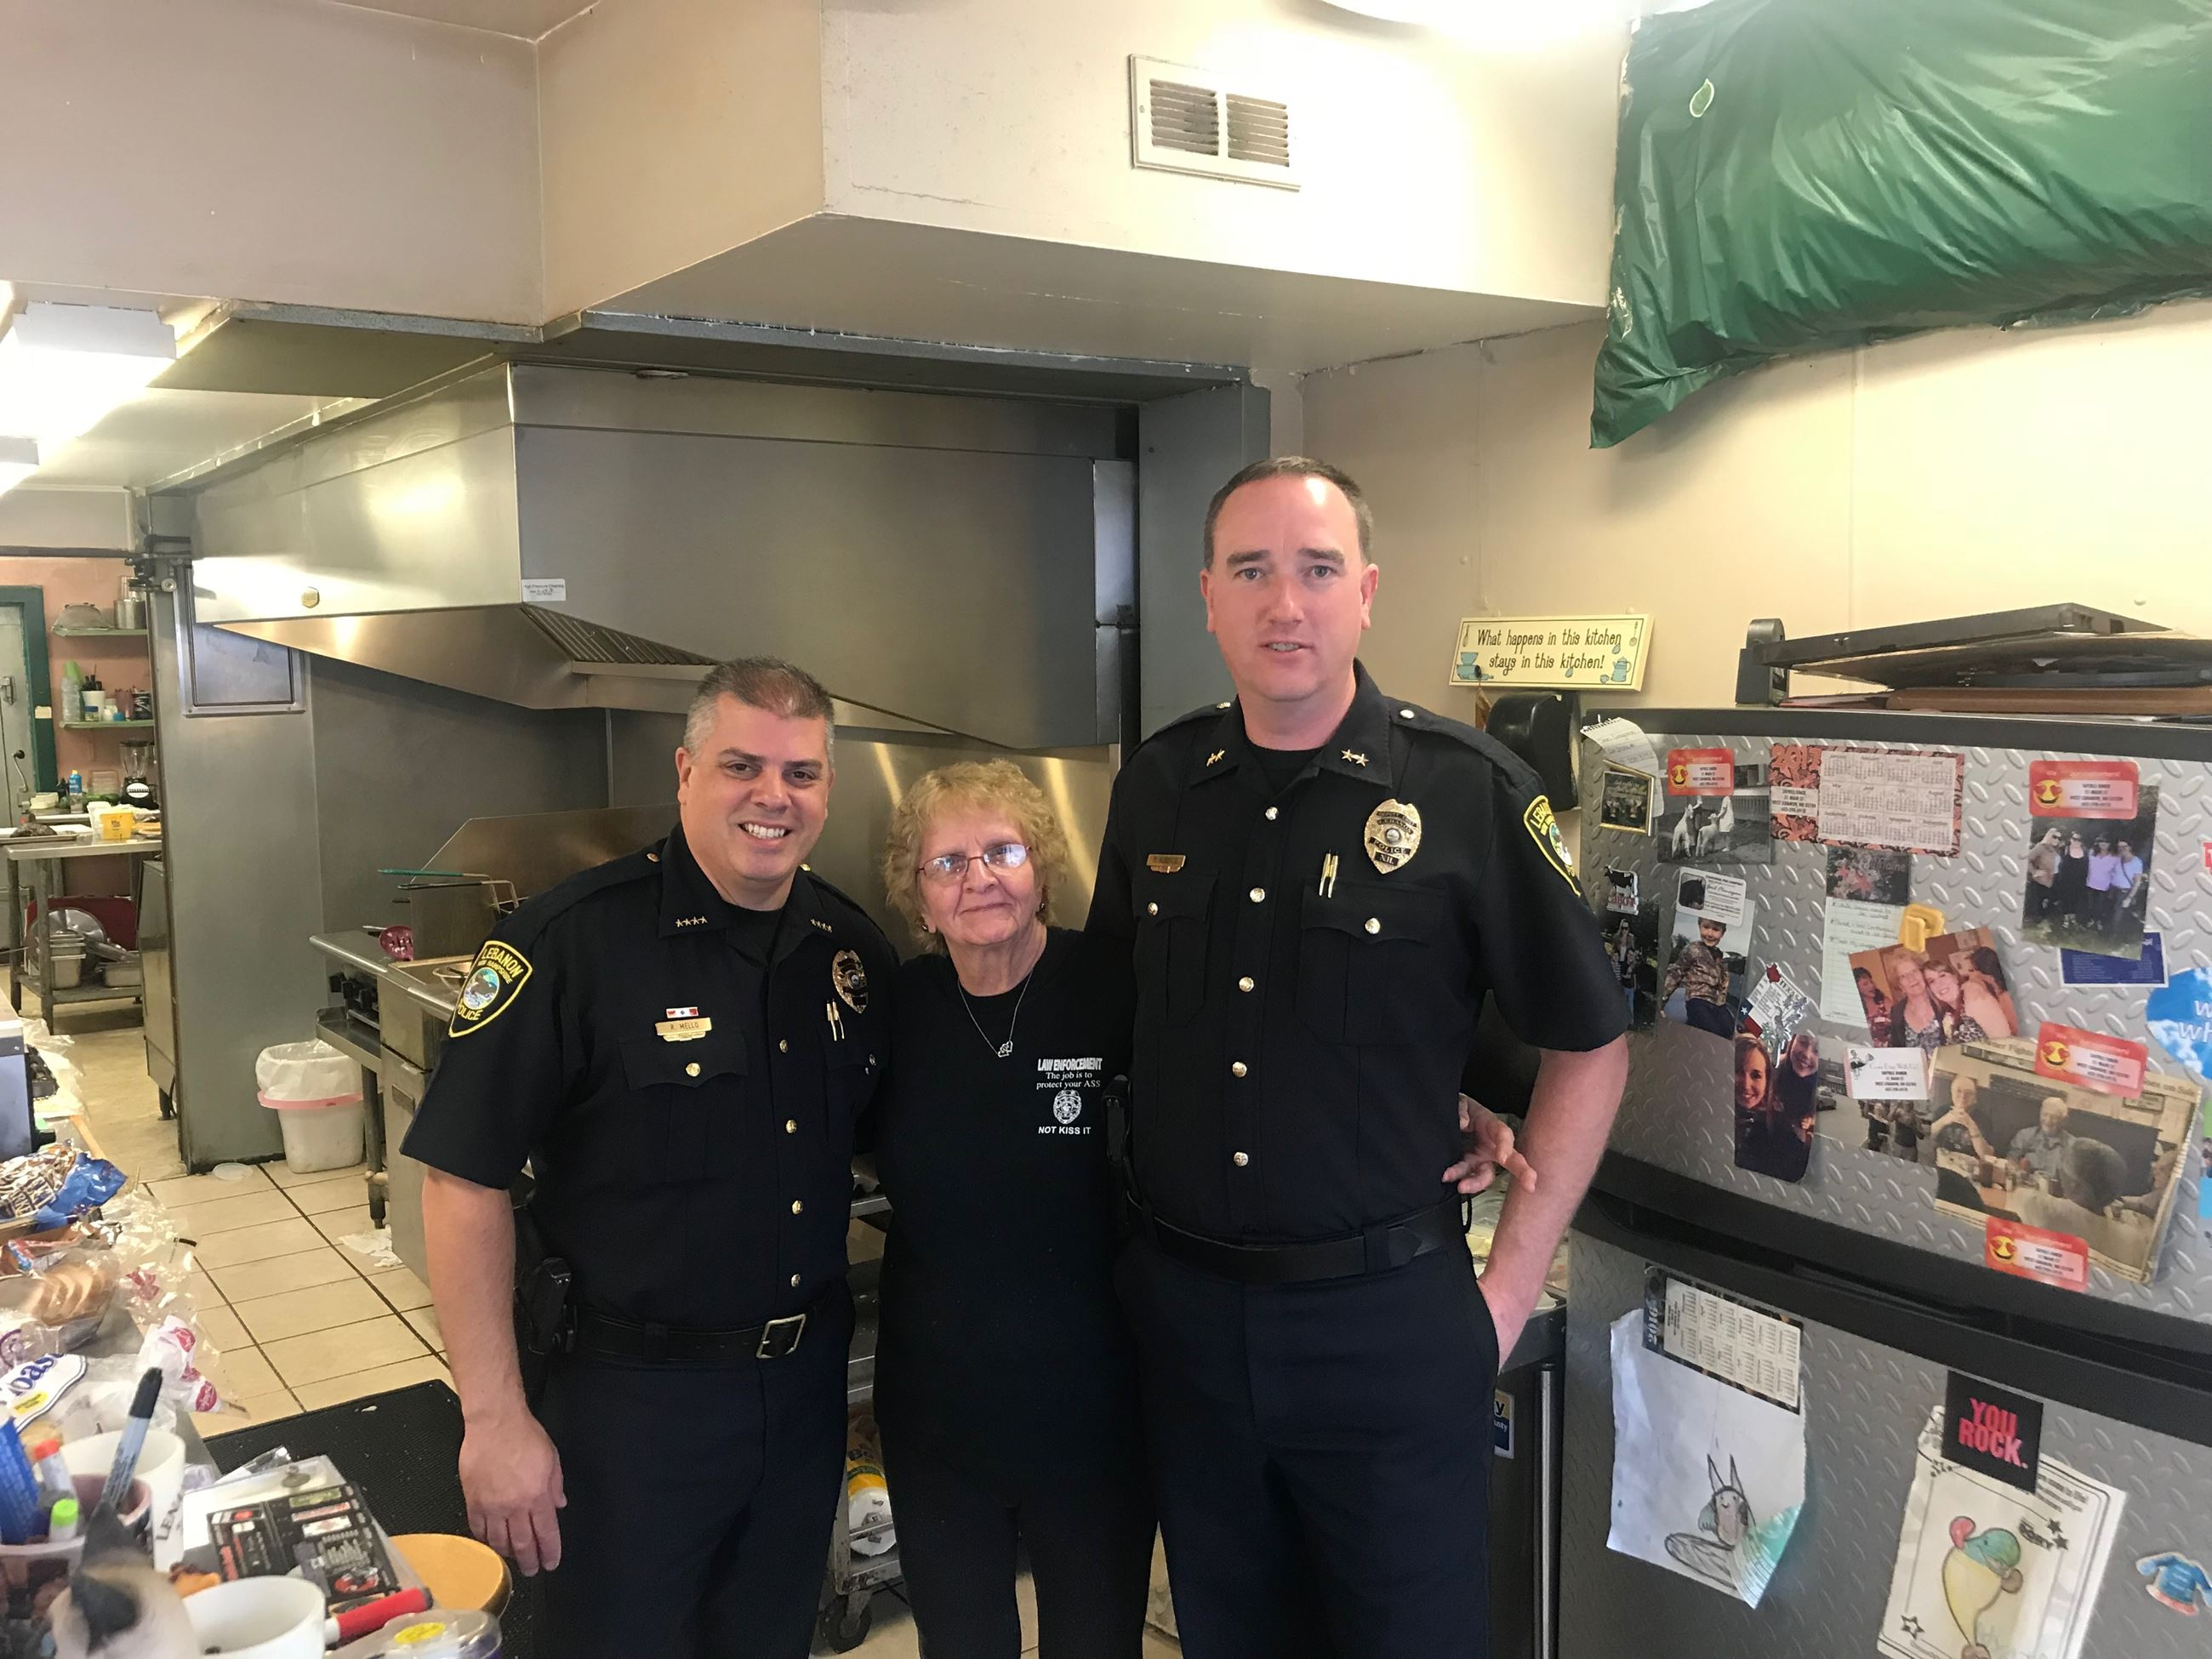 Chief Mello, Deputy Chief Roberts, and Shryl from Shryl's Diner